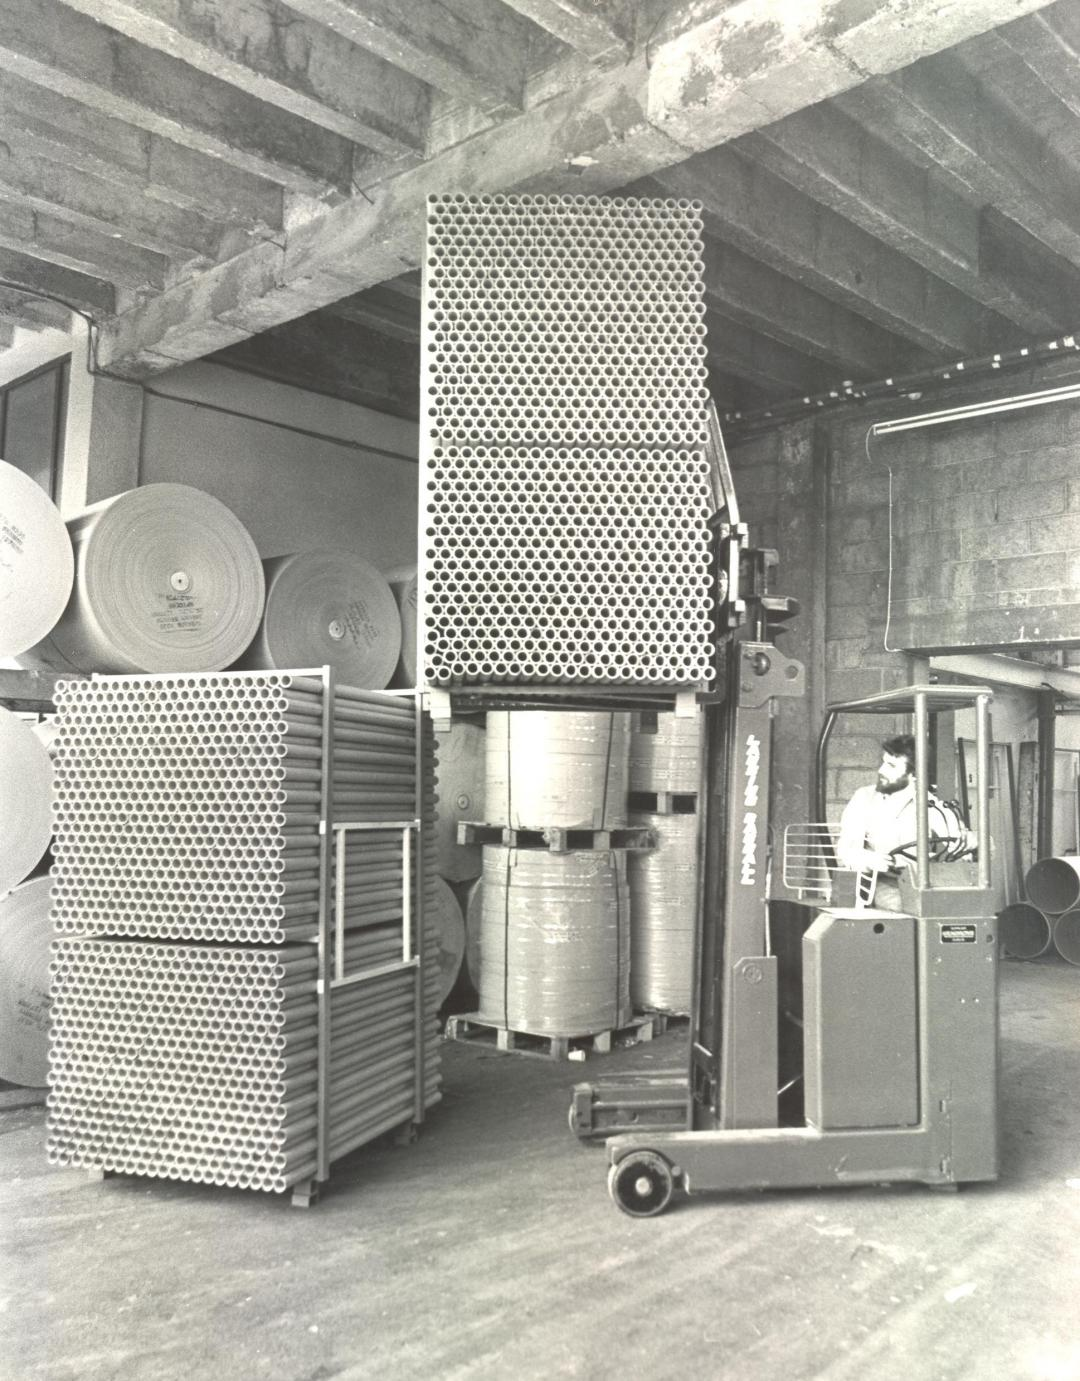 A forklift worker in a factory with cardboard tubes